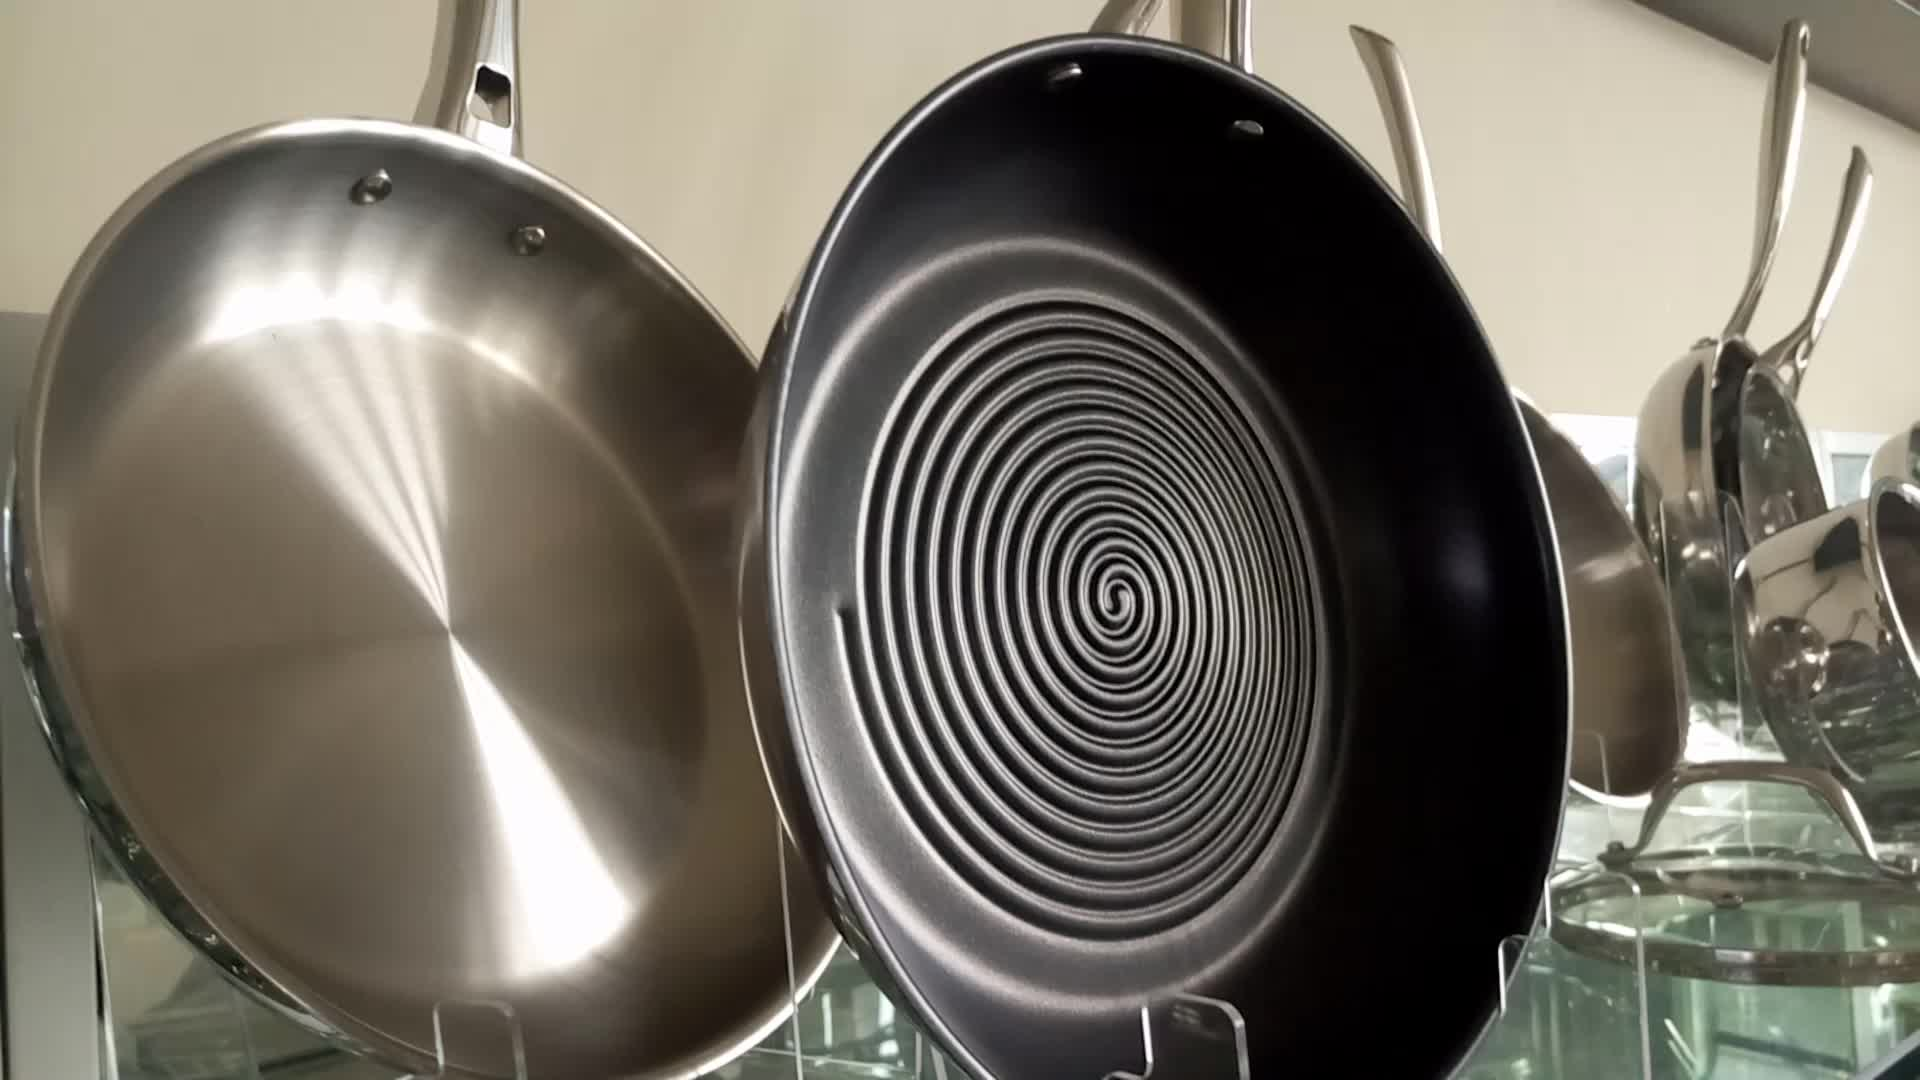 stainless steel  304 induction bottom 0.6mm body  frypan  20cm22cm24cm28cmfrypan